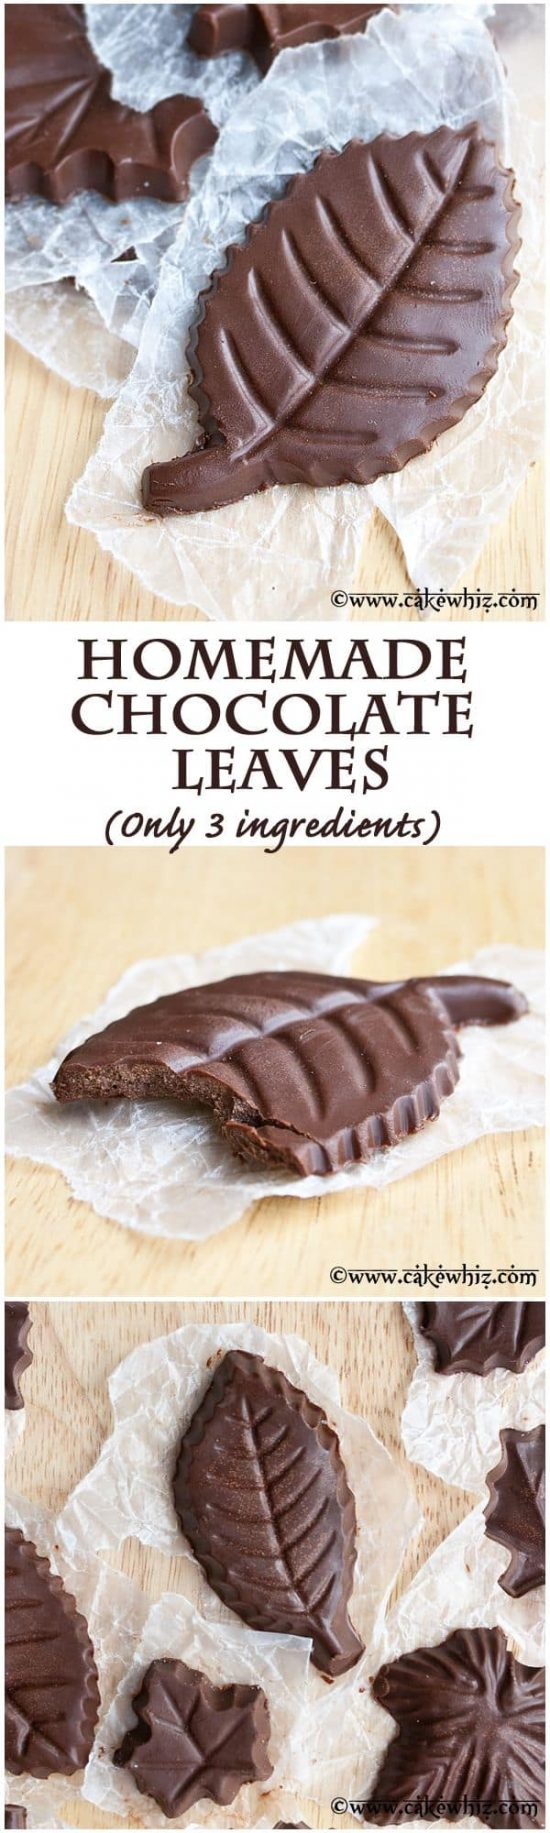 3 Ingredient Chocolate Leaves